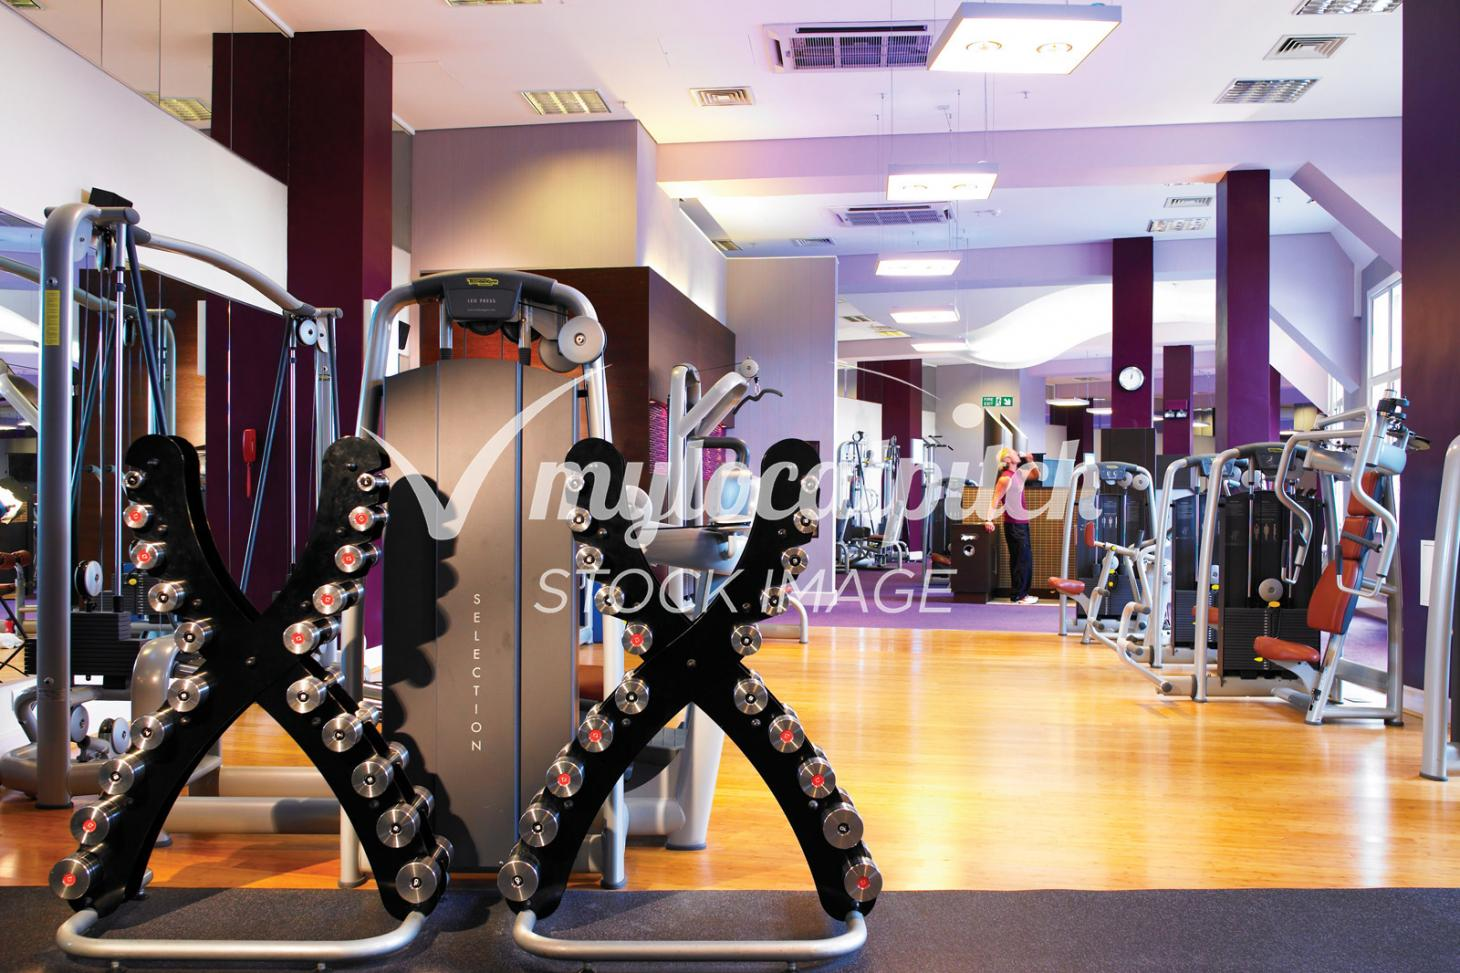 South Park (Redbridge) Gym gym